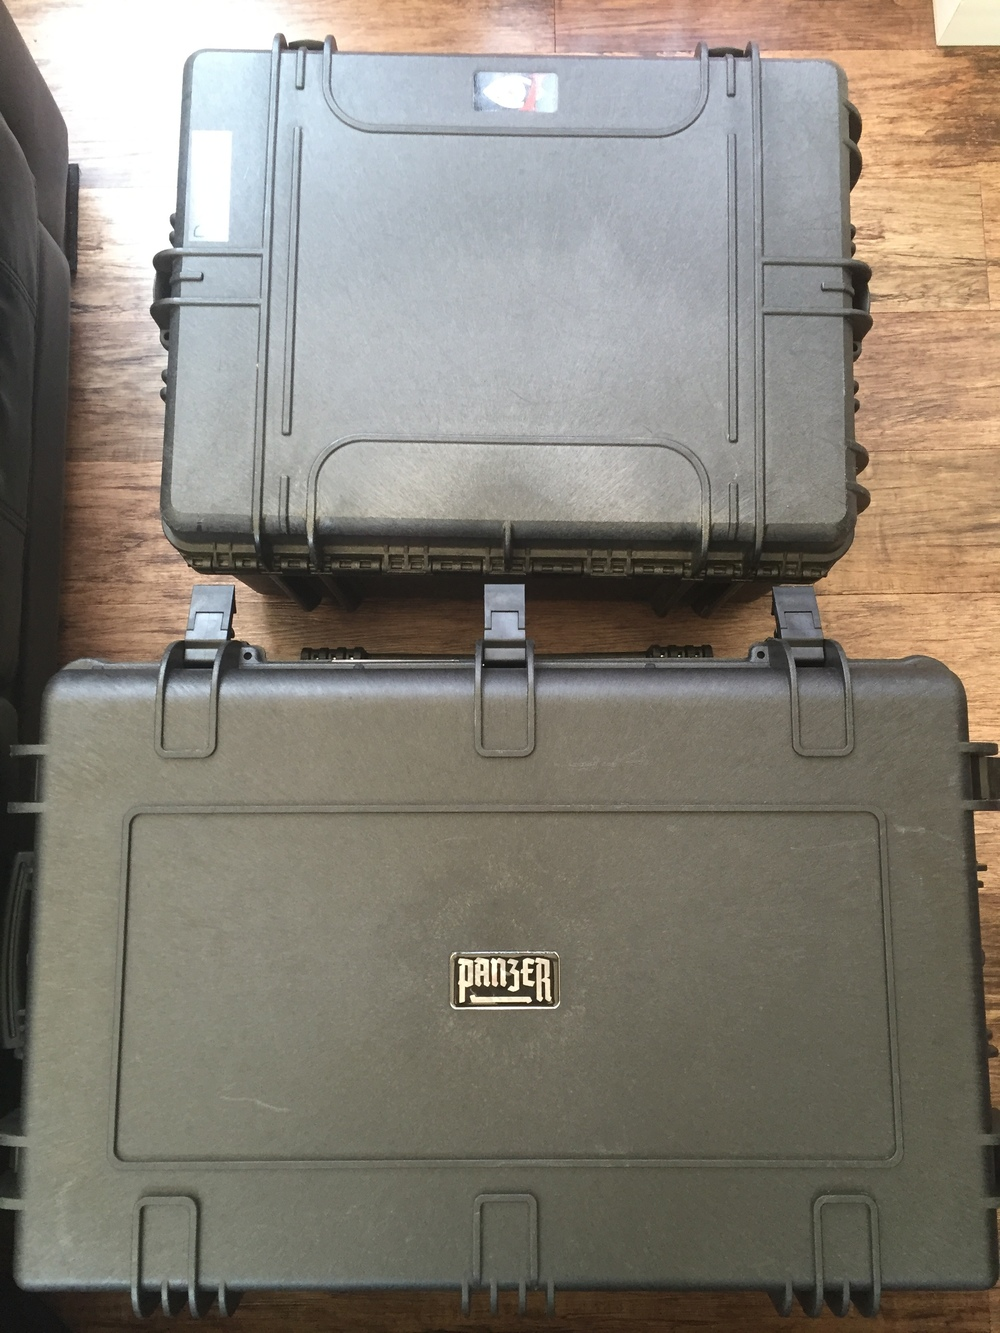 Top View: Multi Rotor Axessories Inspire 1 Travel Mode Case (top) and Panzer Cases Aurora Inspire 1 Flight and Travel Mode Case (bottom).